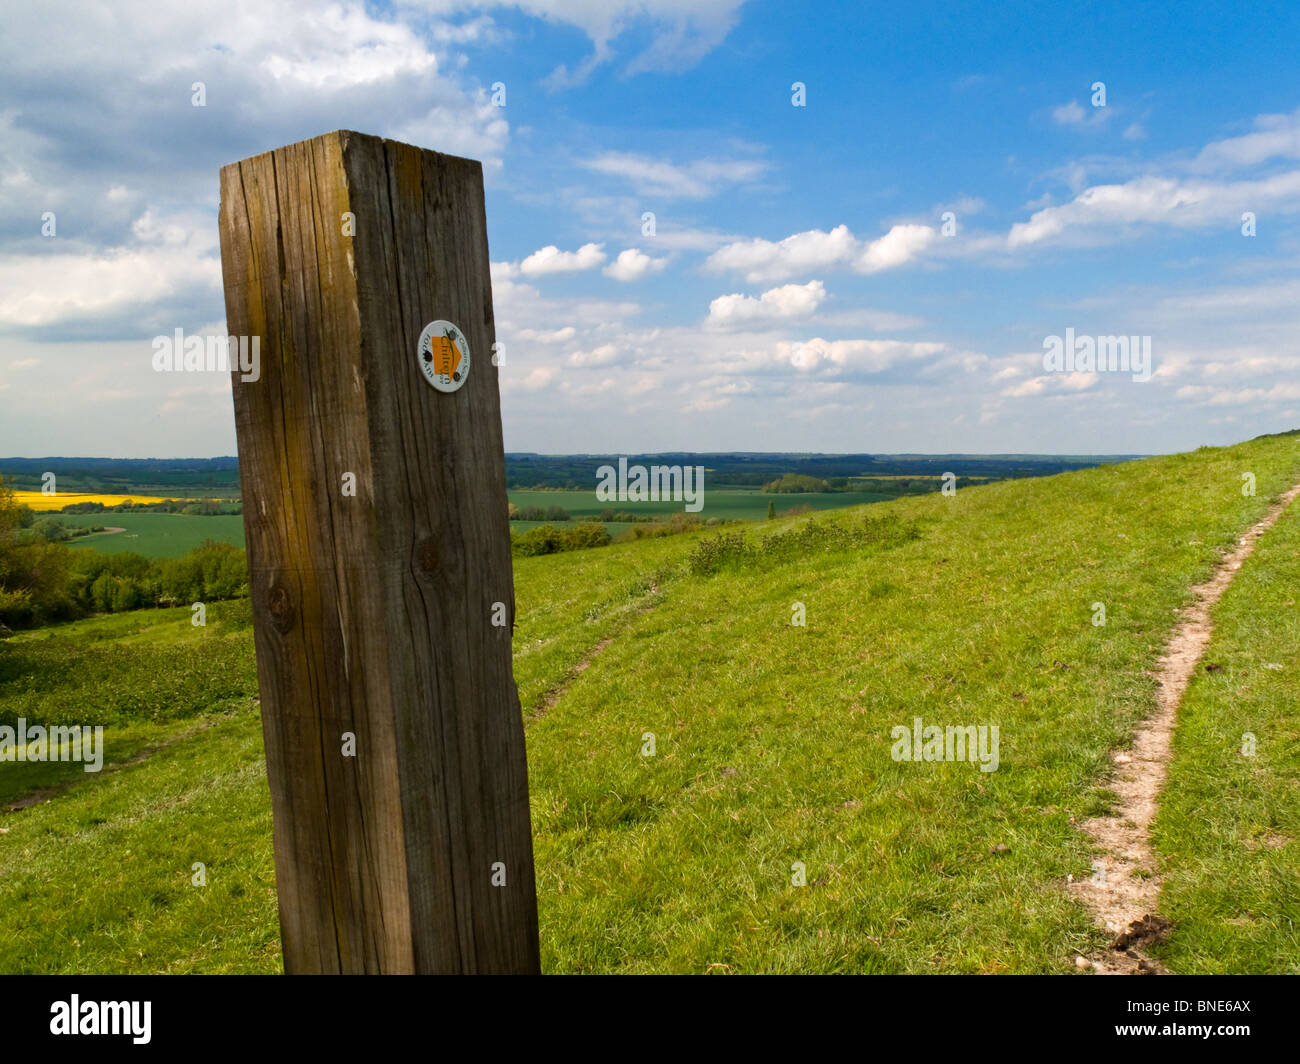 Wooden signpost on the Chiltern Way long distance footpath in Bedfordshire southern England UK - Stock Image